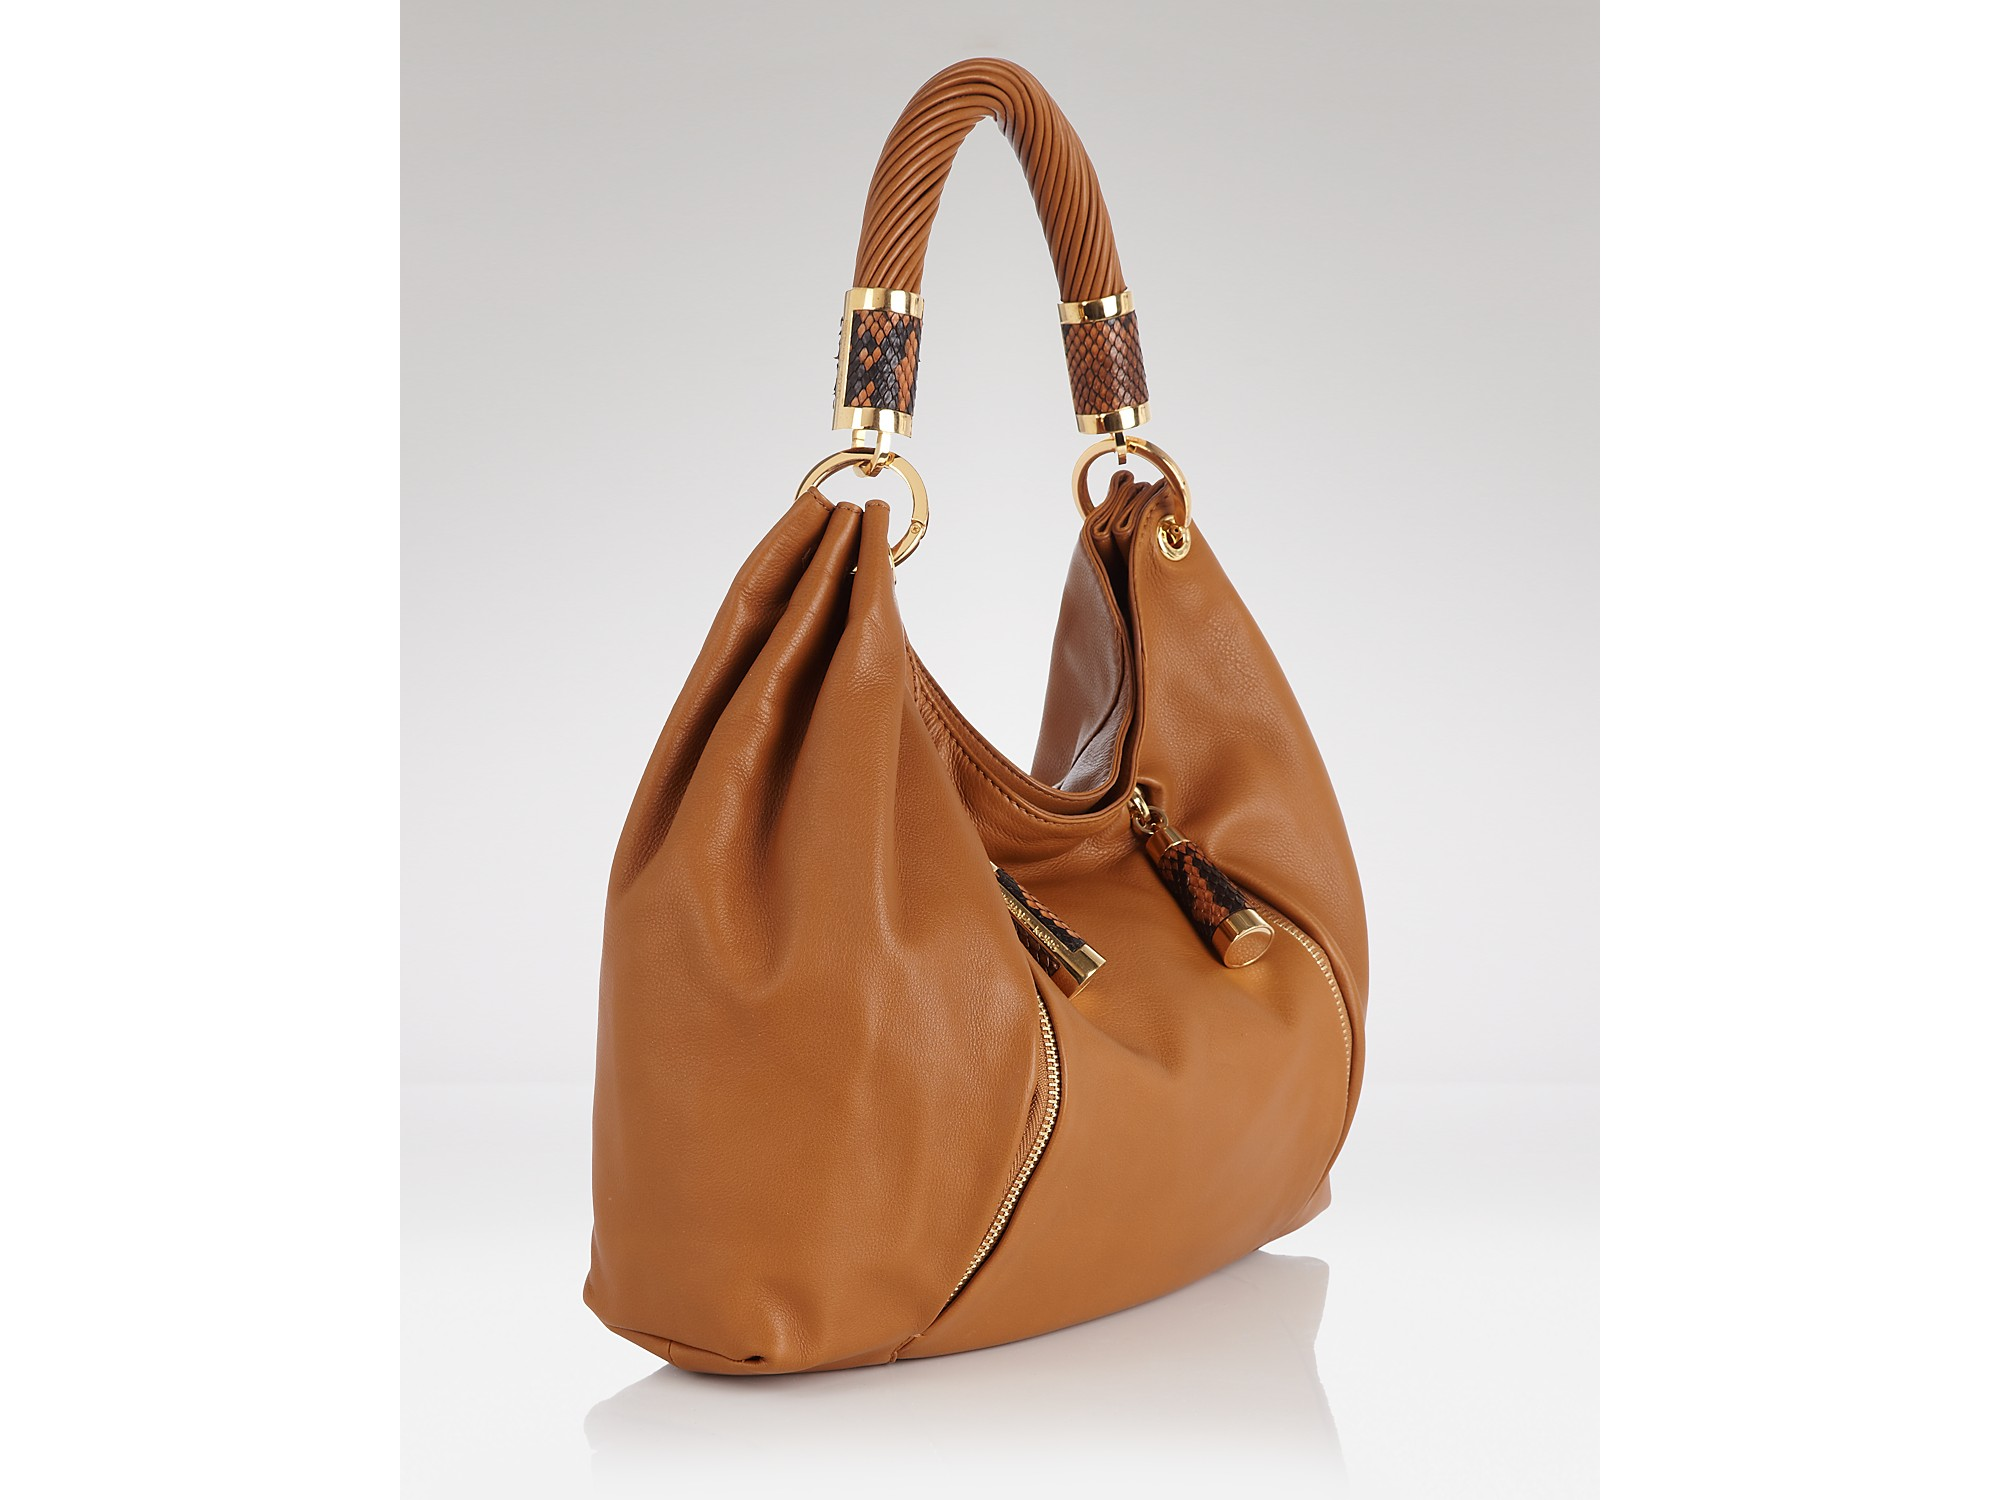 purchase michael kors tonne hobo barley leather golden co b4a67 9531e rh seansinjin com